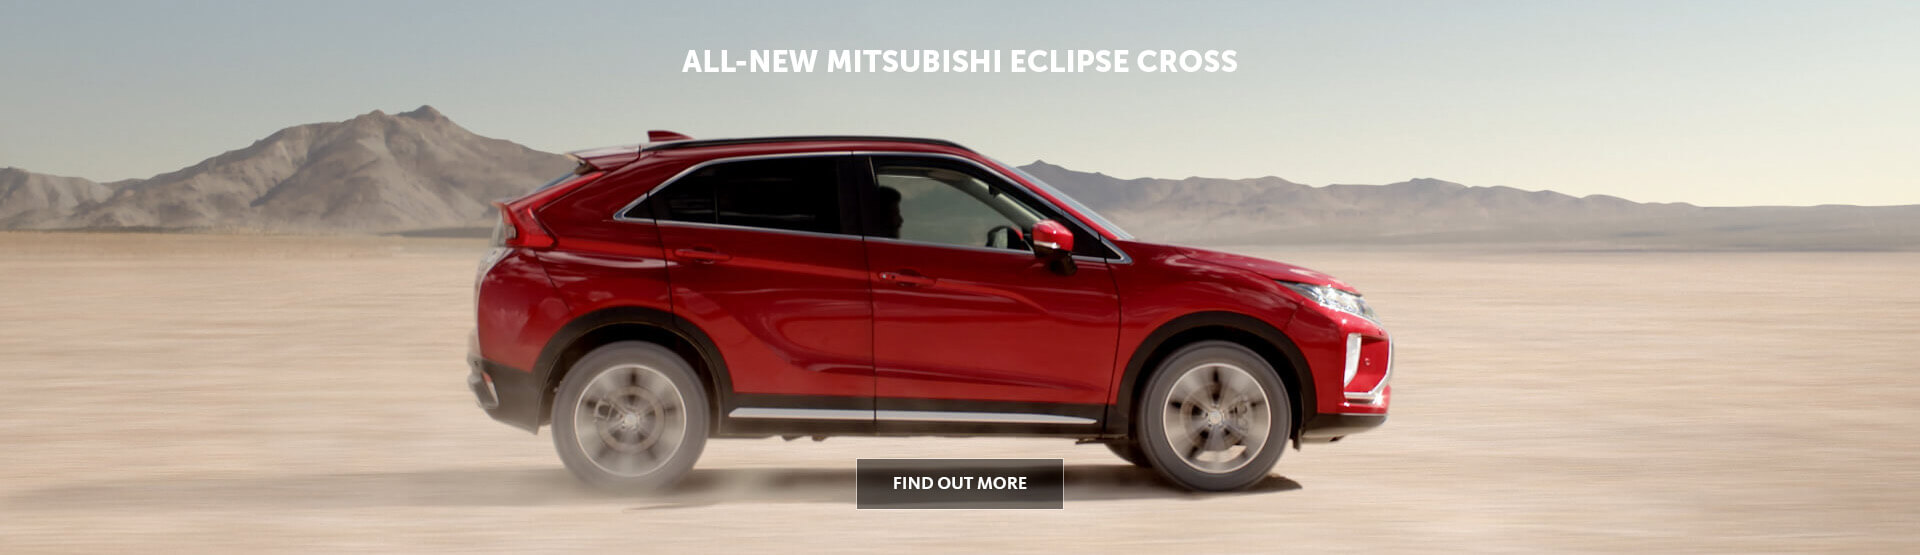 All-New Eclipse Cross